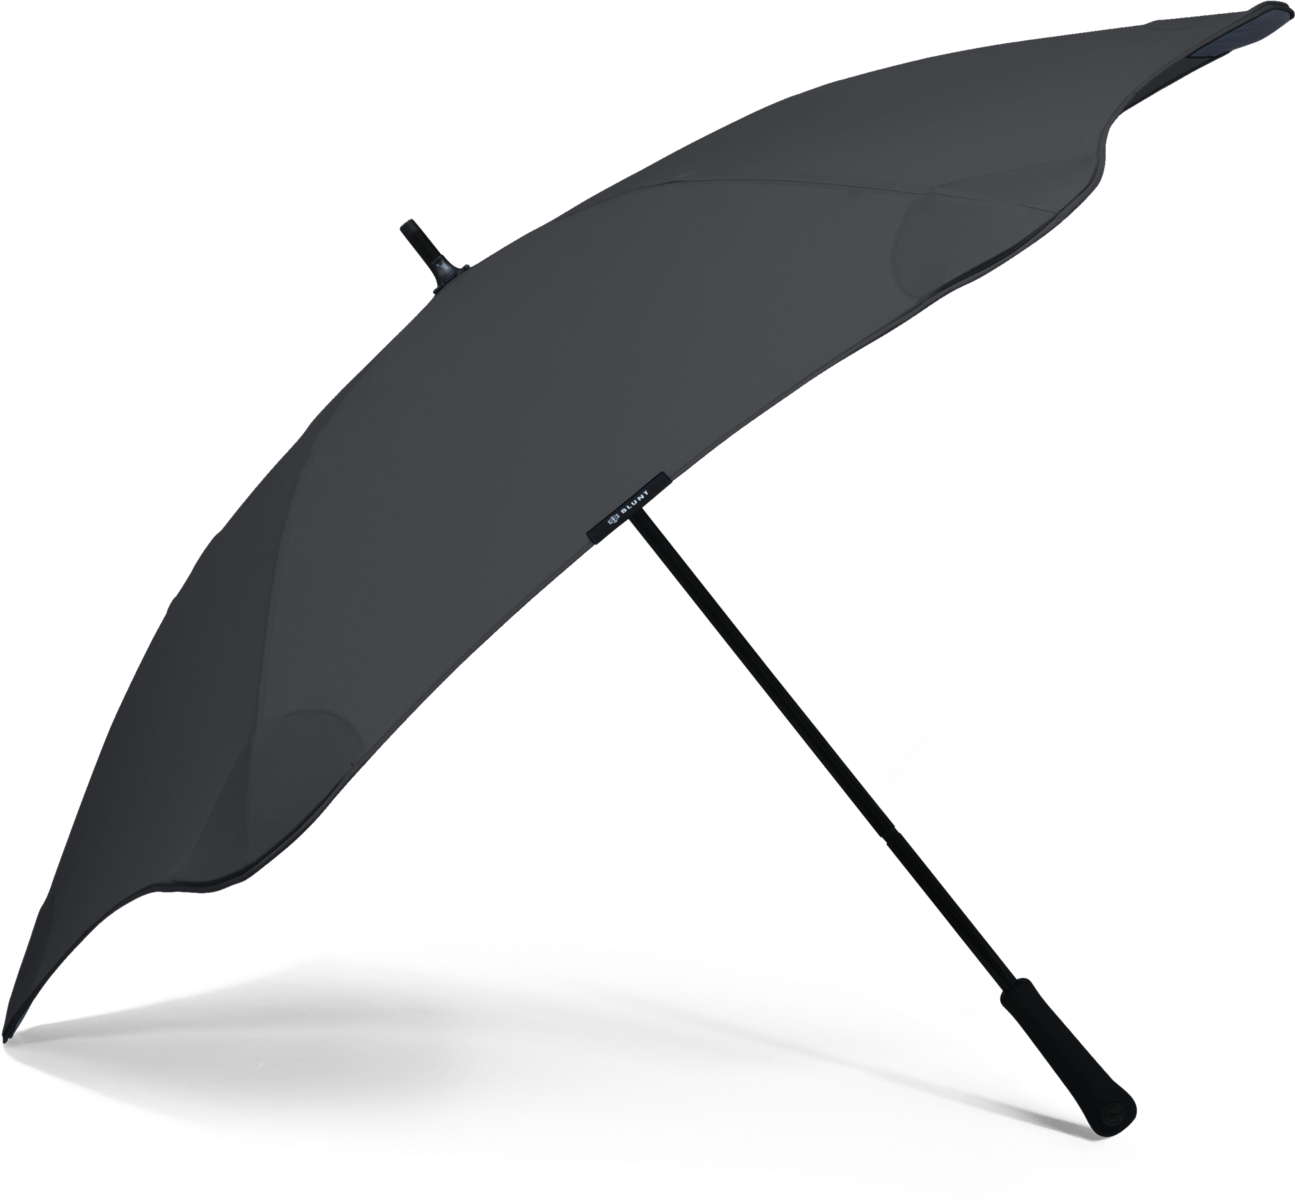 Blunt Umbrellas, Classic Umbrella - Black, - Placewares